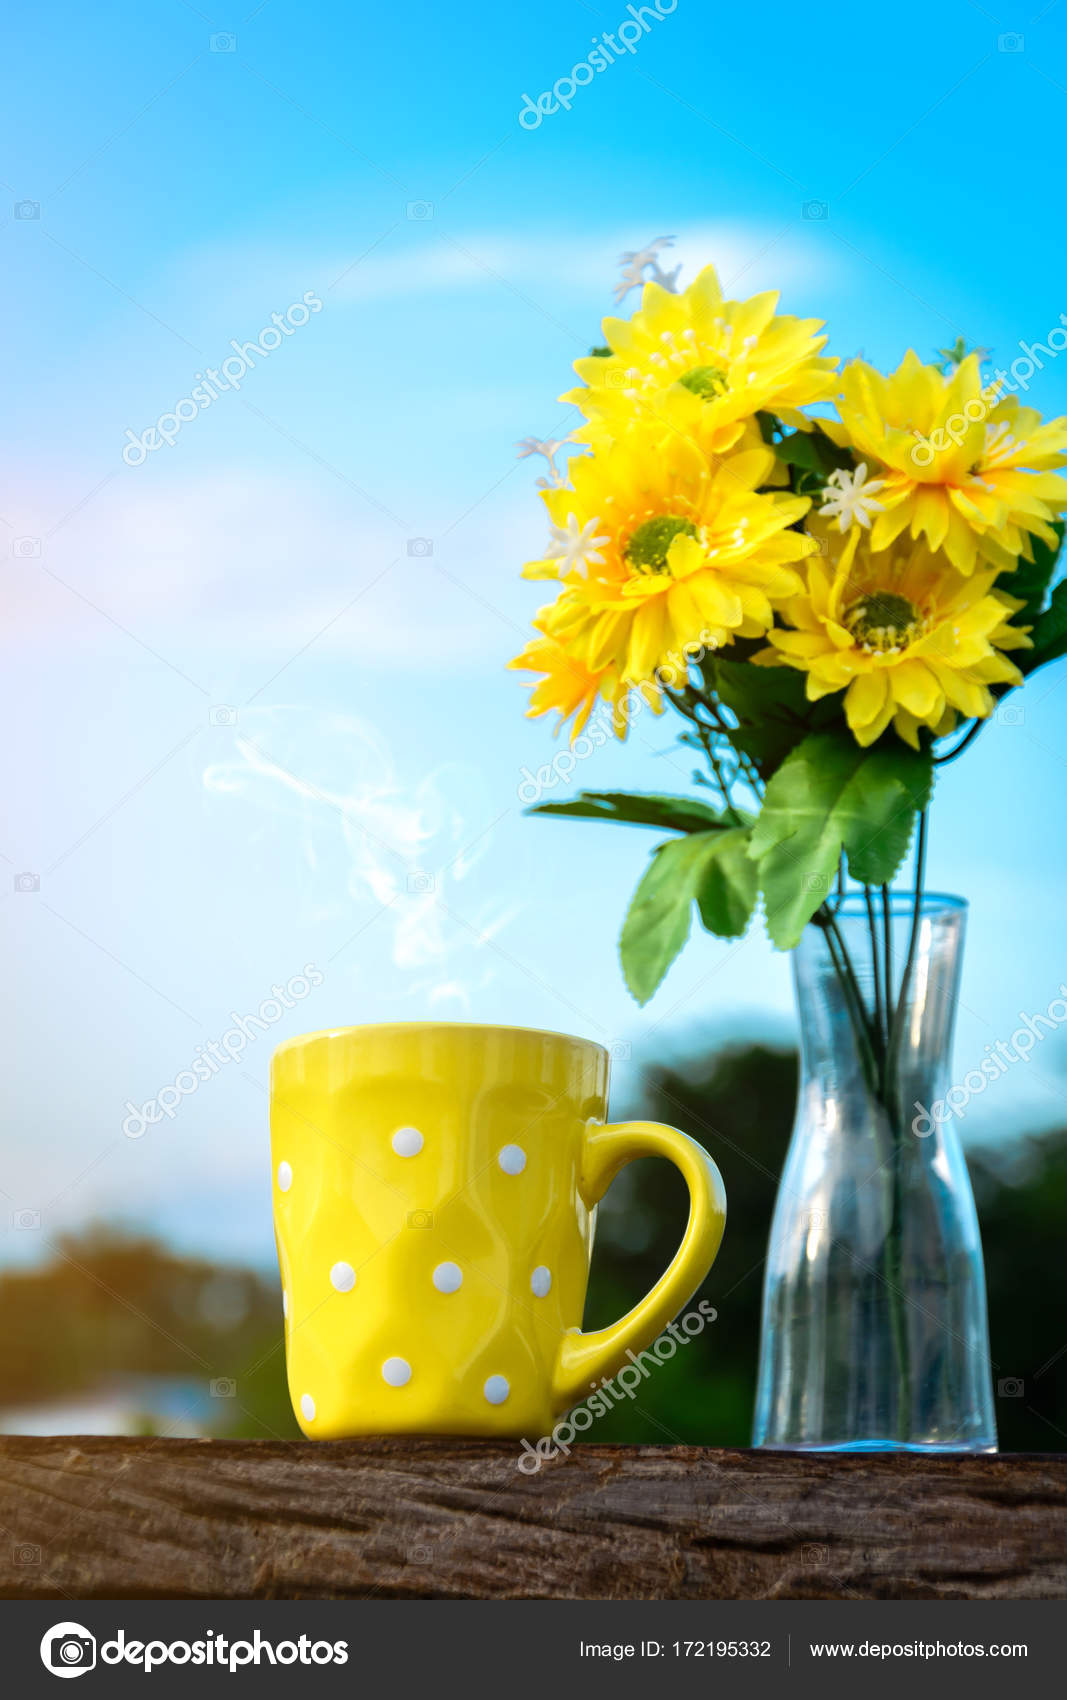 Good morning coffee and yellow flower vase stock photo good morning coffee and yellow flower vase stock photo mightylinksfo